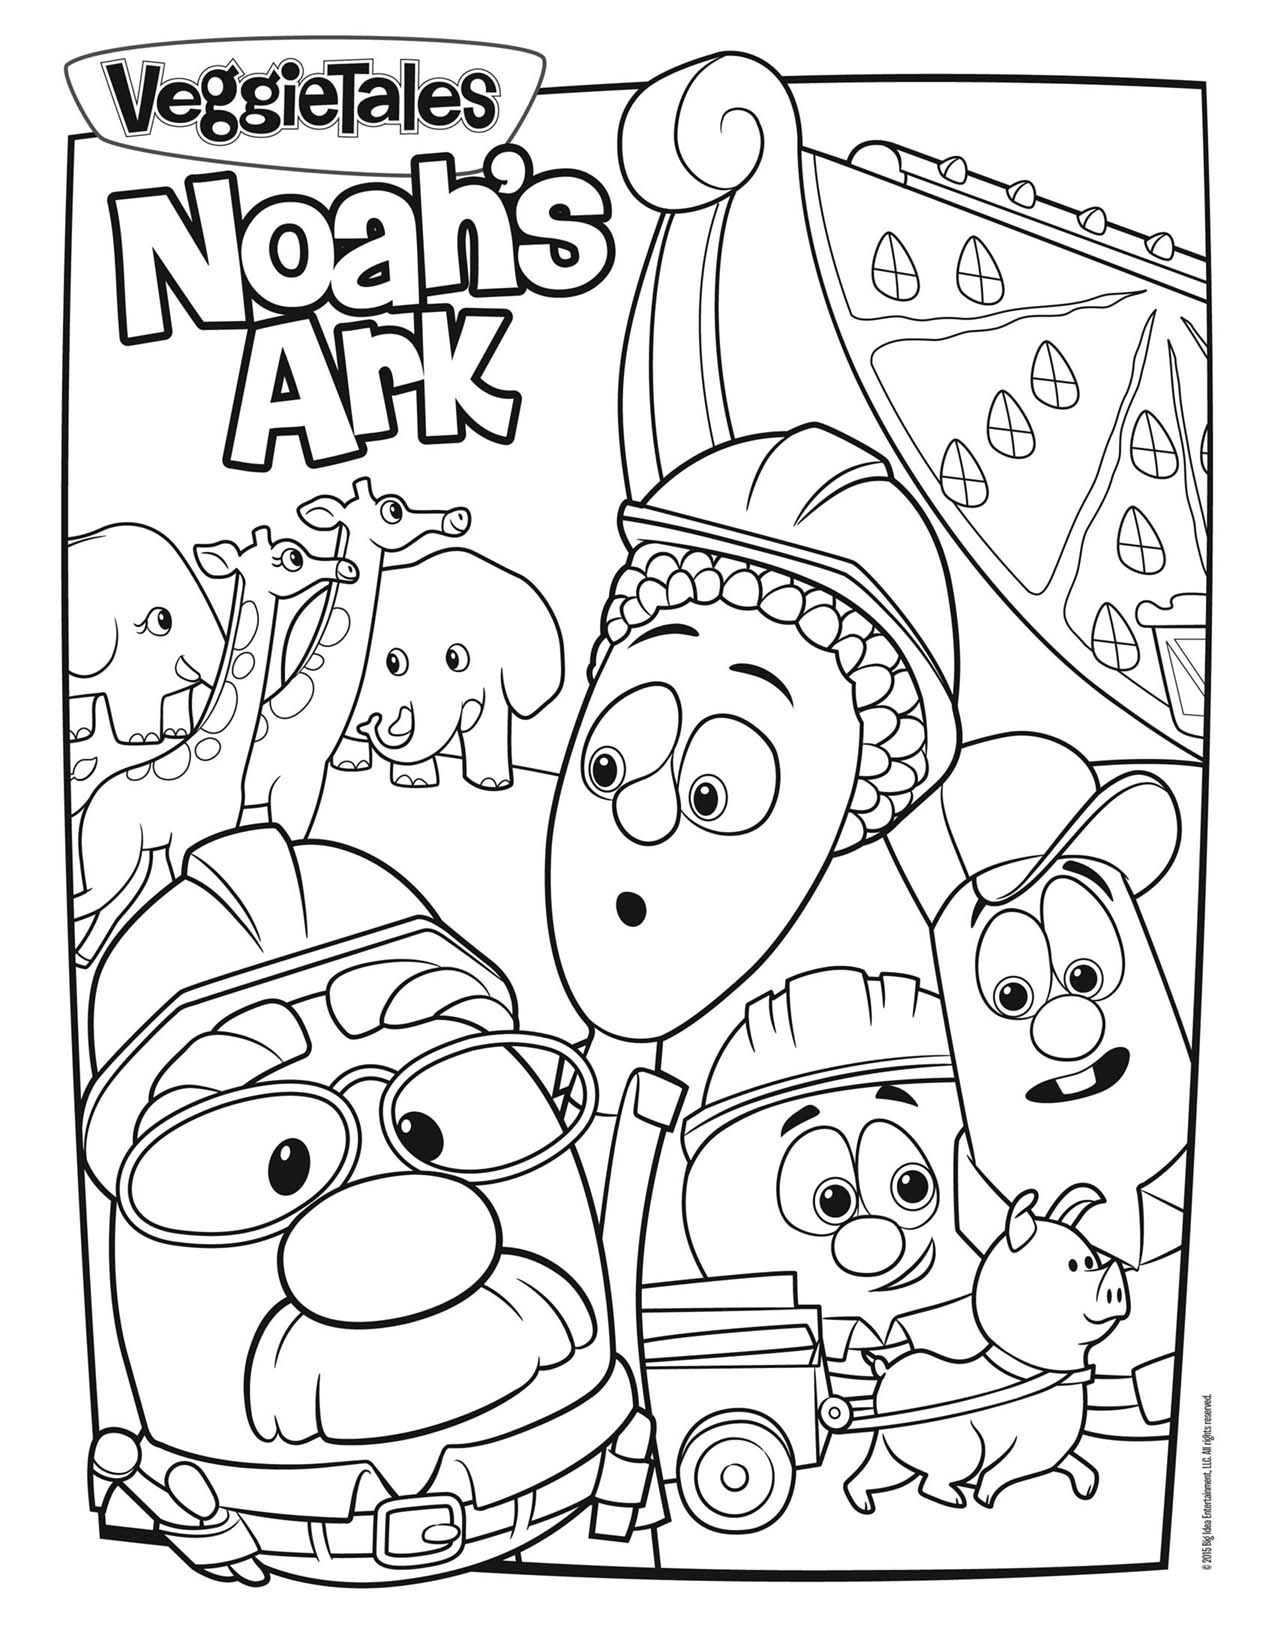 Noah 39 s ark coloring page noah 39 s ark pinterest sunday for Noah ark coloring page